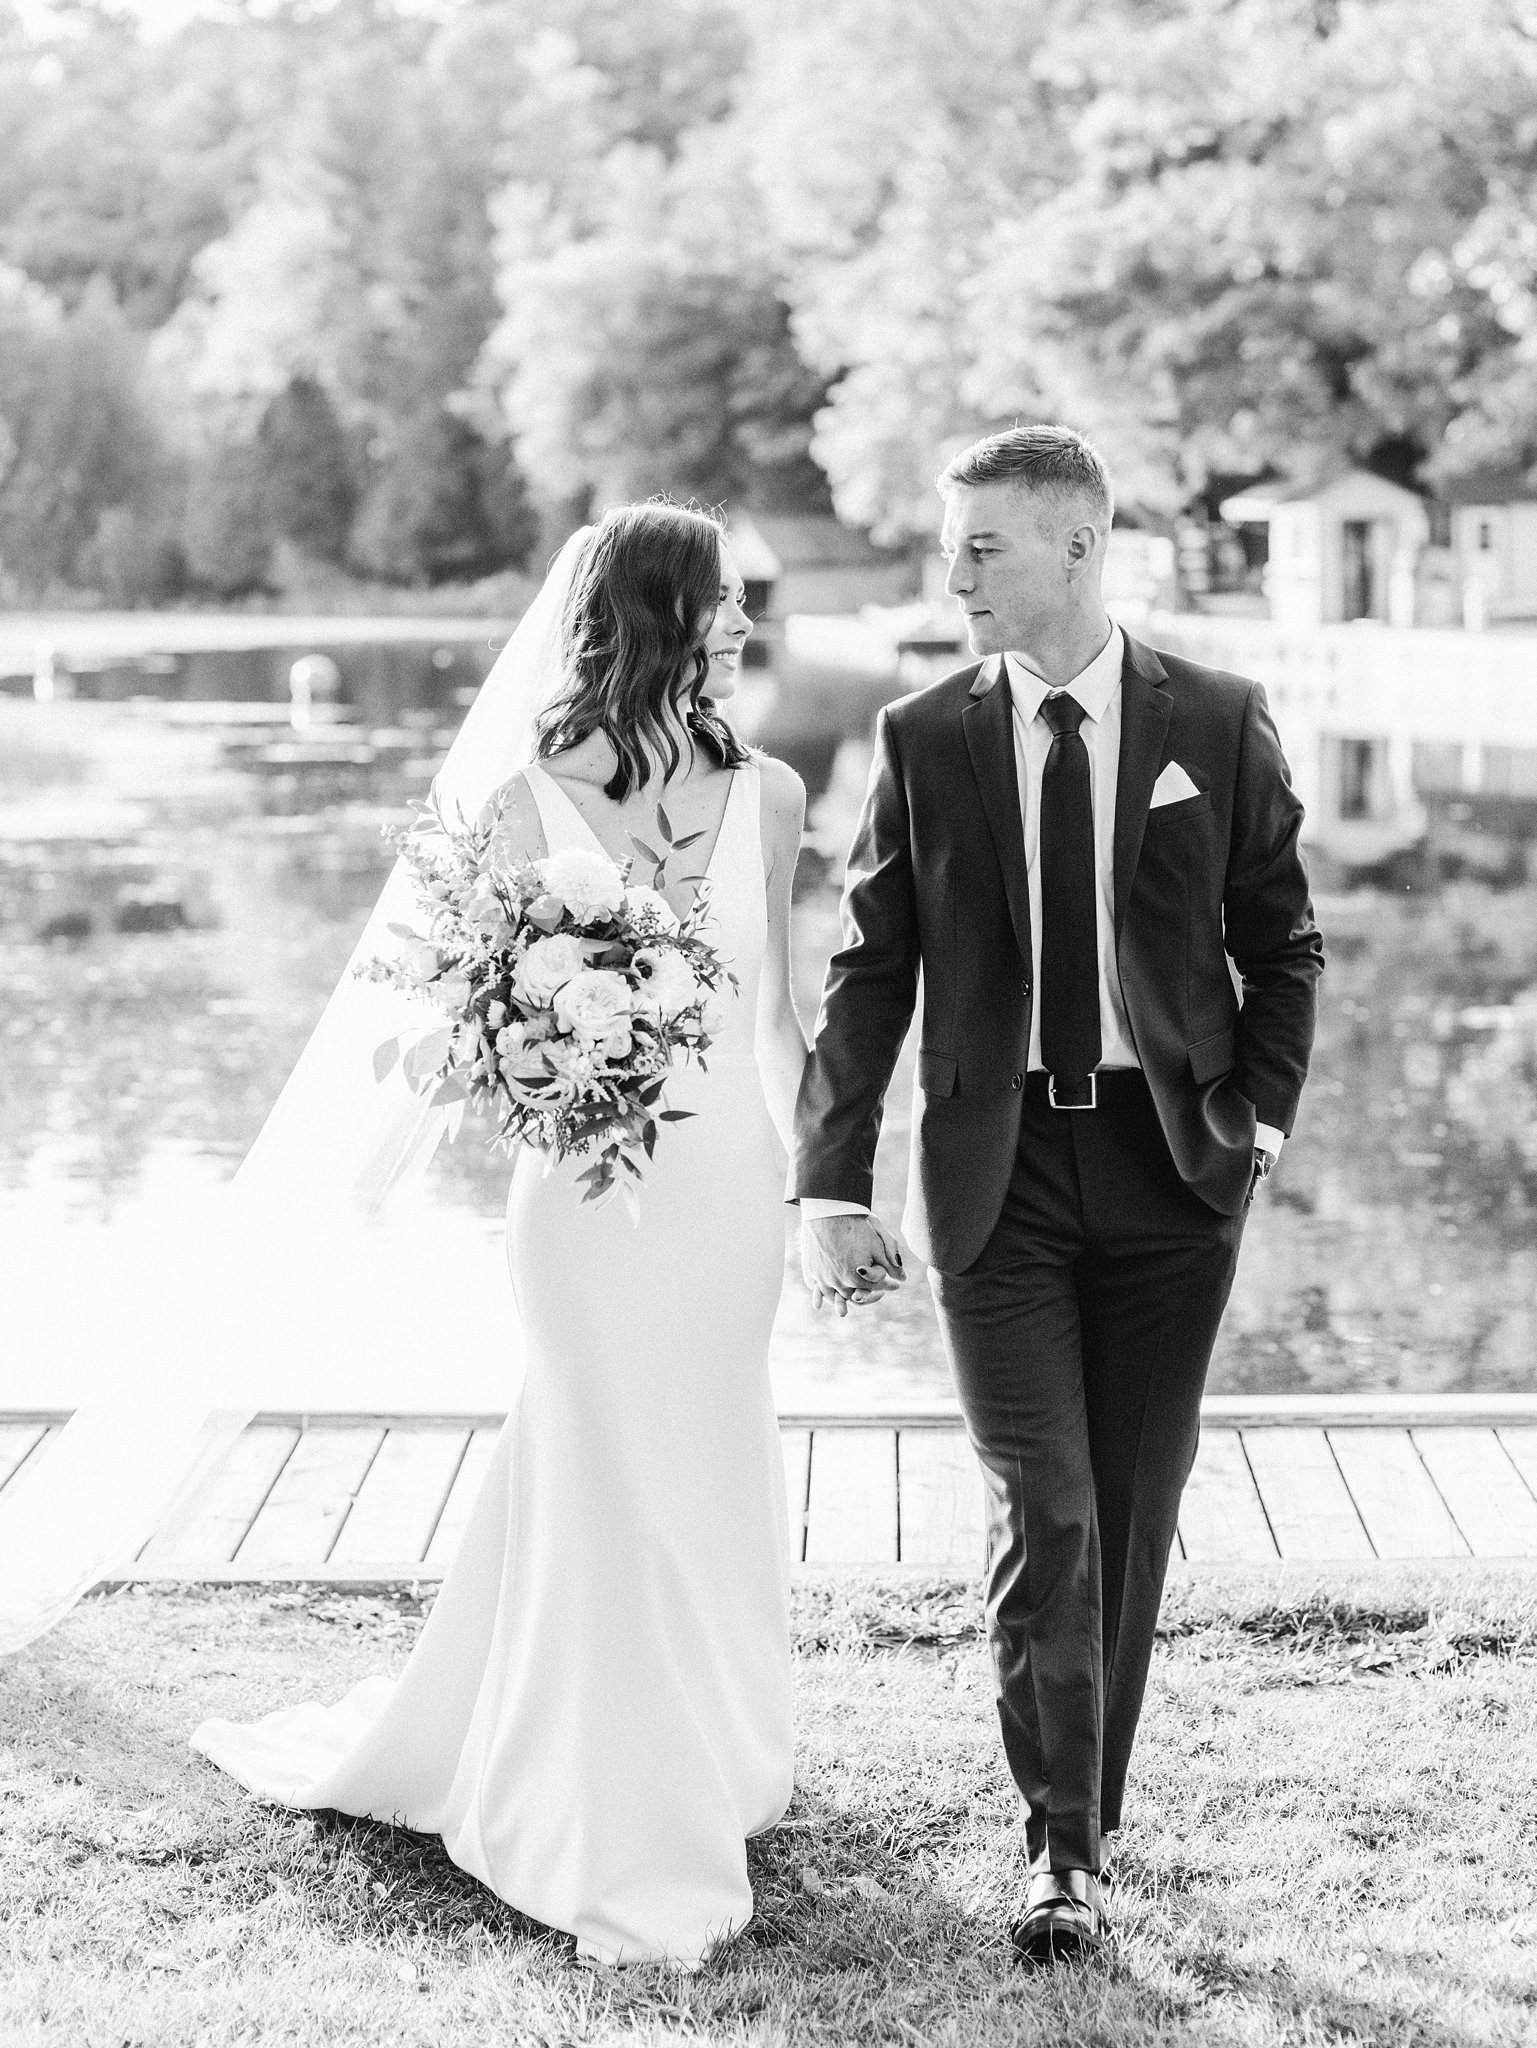 Bride and groom walk along the water, Opinicon Wedding Photos by Amy Pinder Photography